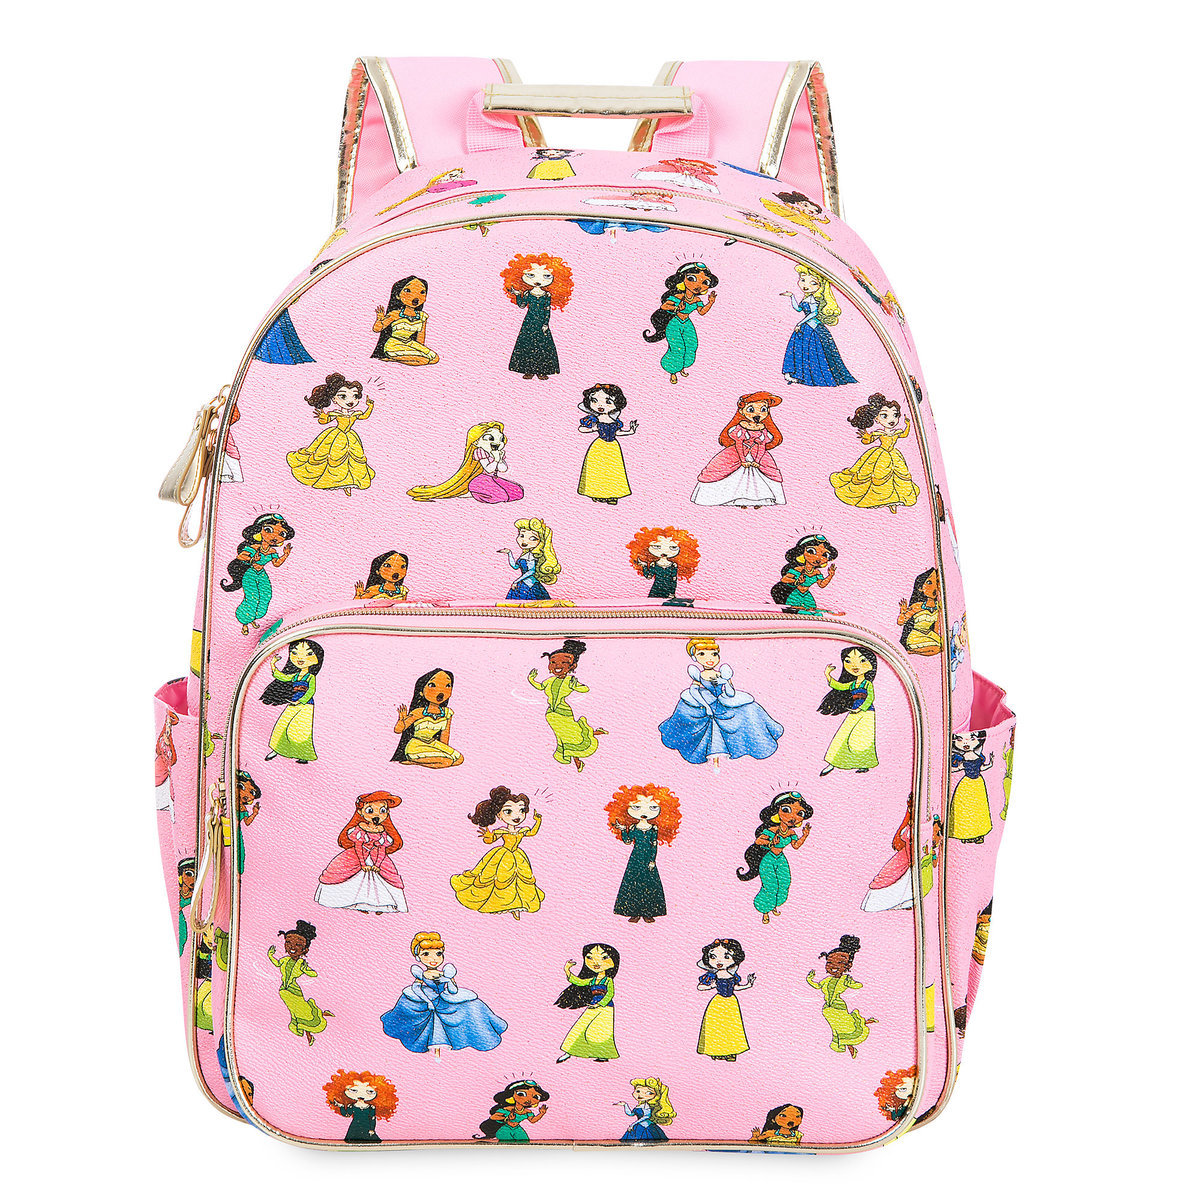 5d573683fbf Product Image of Disney Princess Backpack - Personalized # 1